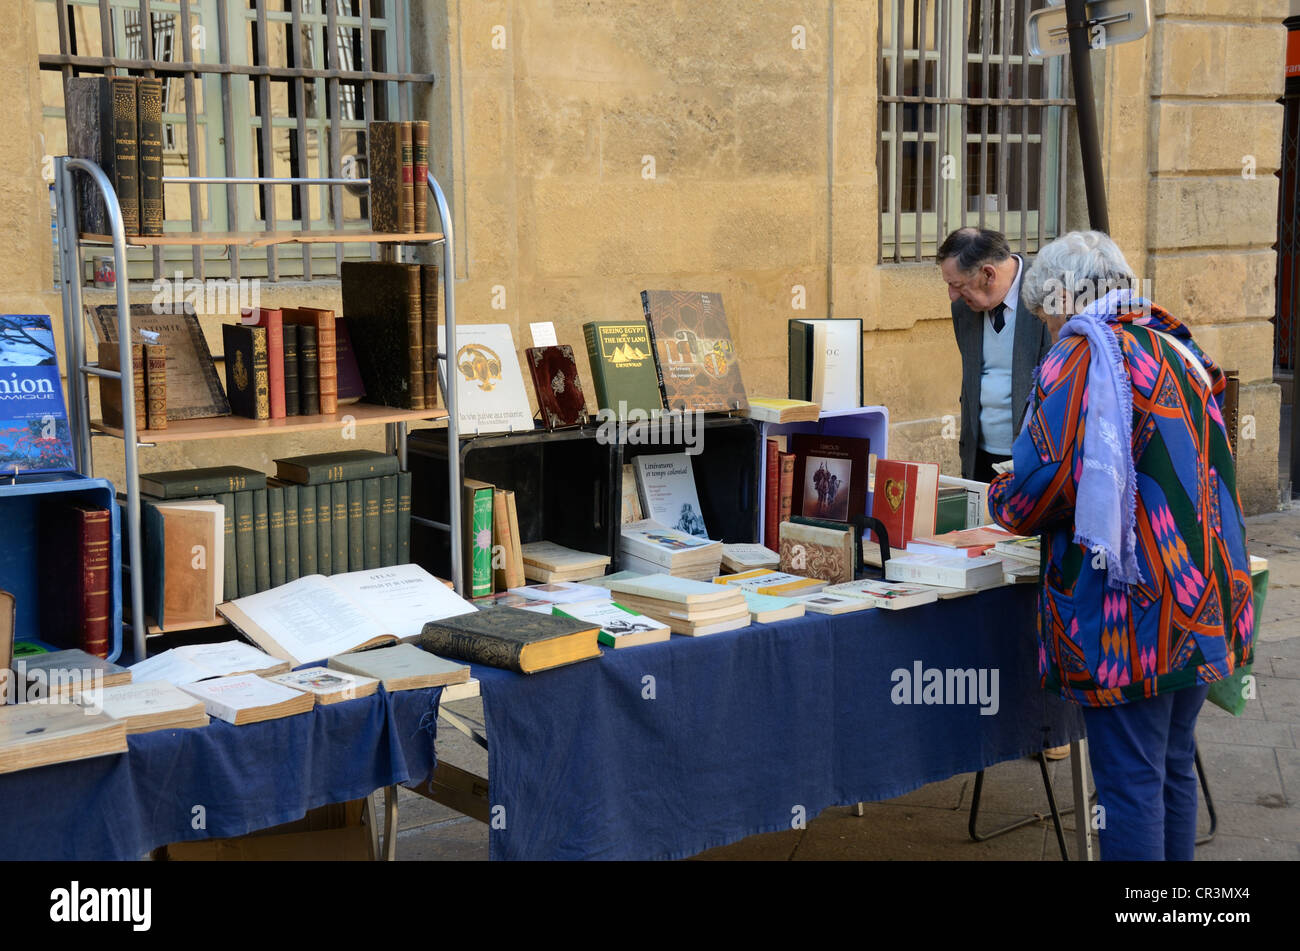 Book Fair, Second-hand Book Stall or Book Seller Place de la Mairie Aix-en-Provence Provence France - Stock Image